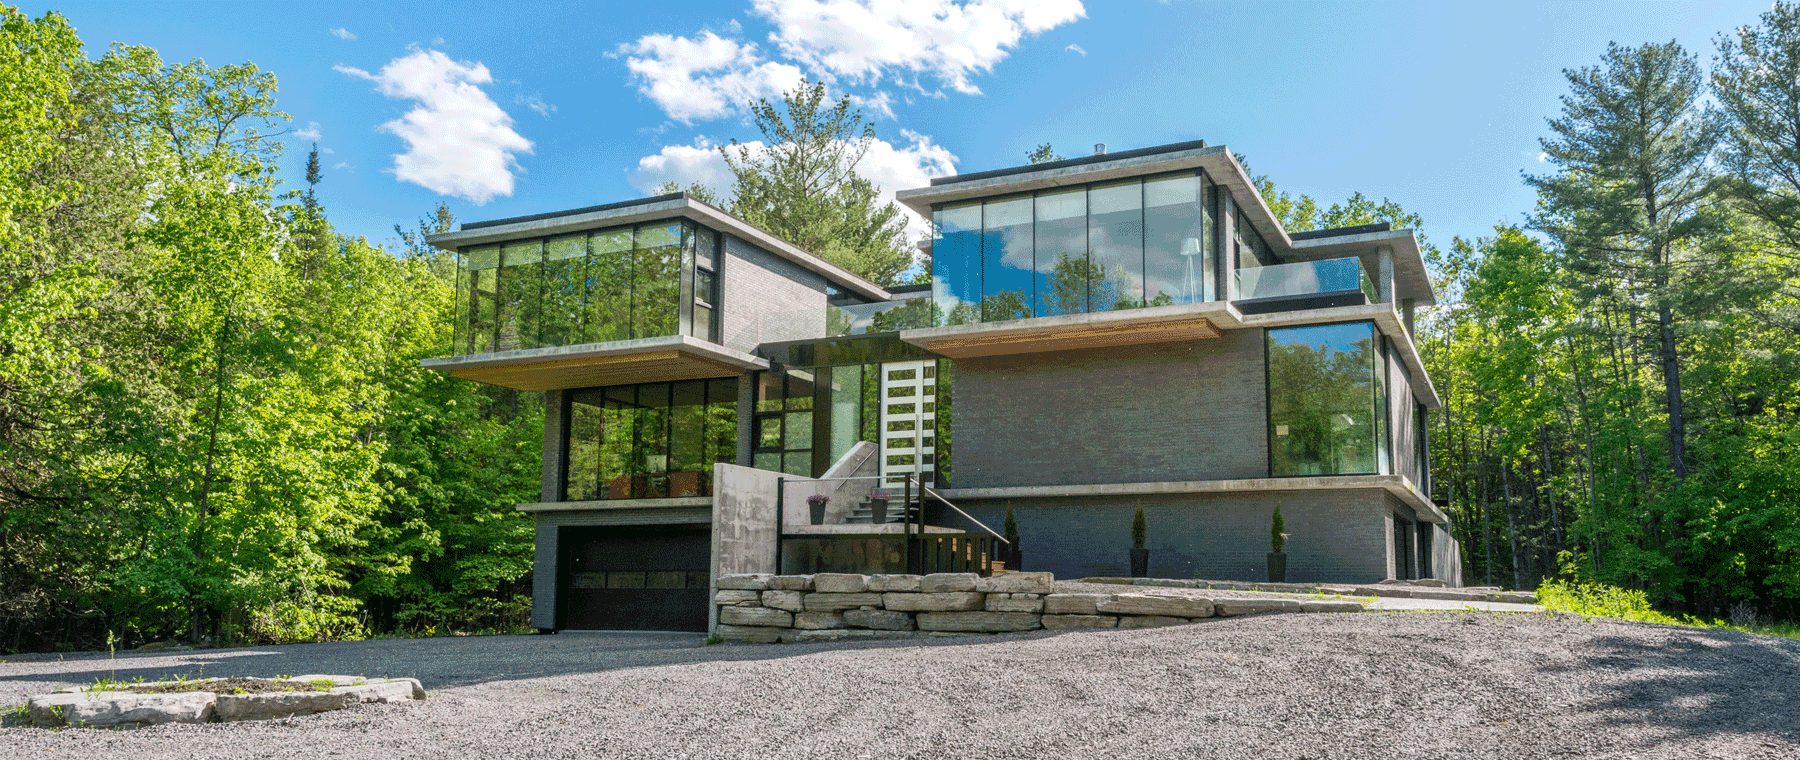 House of the Week: $3.2 million for a modern mansion in Dunrobin